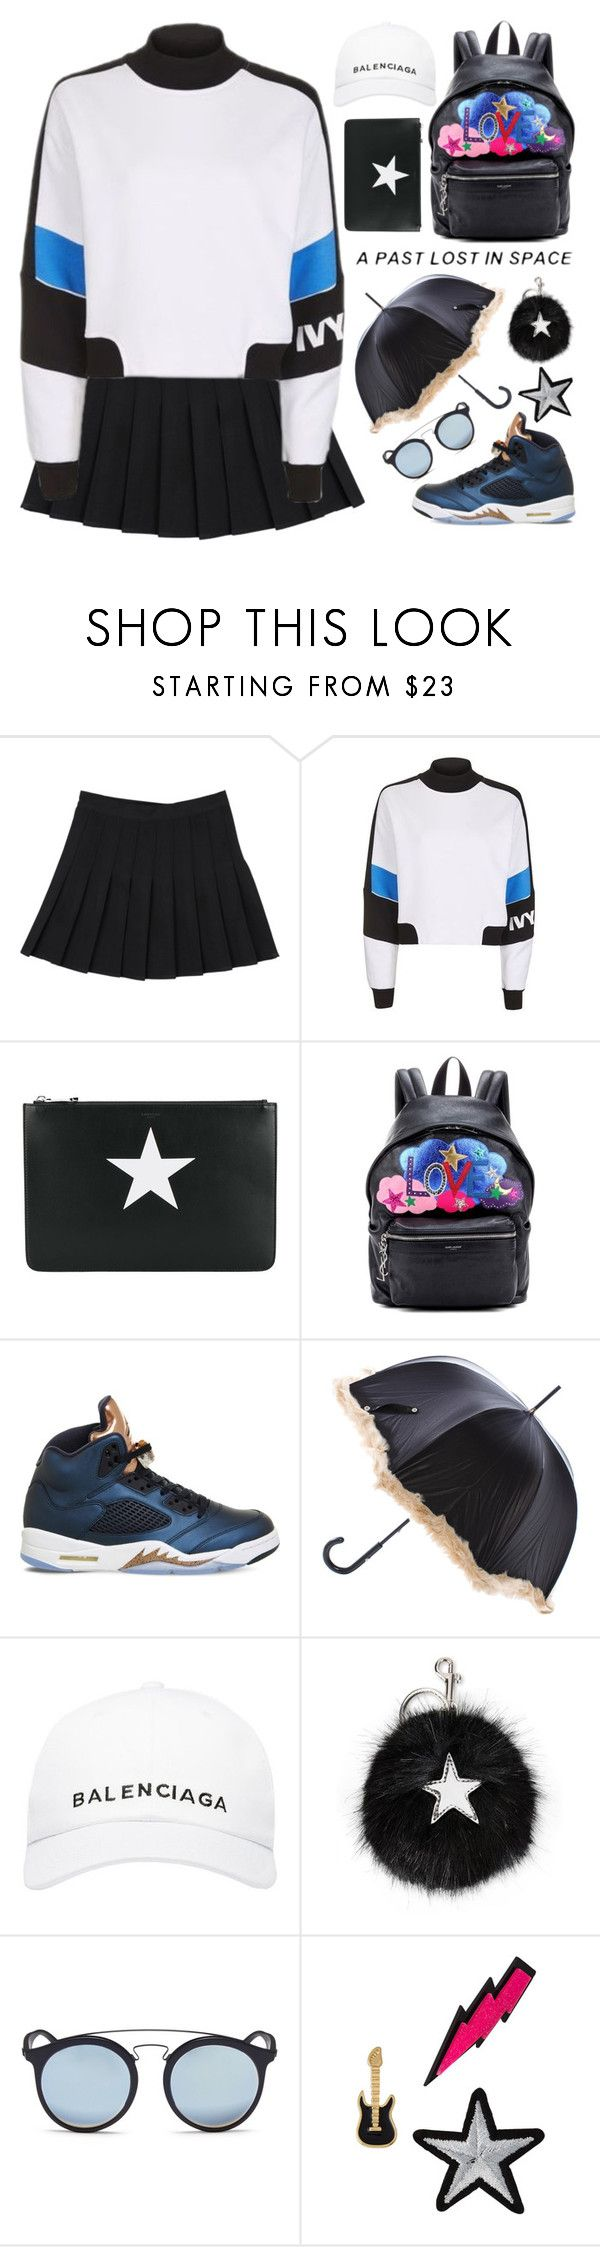 """Celebrate Our 10th Polyversary!"" by sellyankumala ❤ liked on Polyvore featuring Topshop, Givenchy, Yves Saint Laurent, NIKE, Jean-Paul Gaultier, Balenciaga, STELLA McCARTNEY, Ray-Ban, Lydell NYC and polyversary"